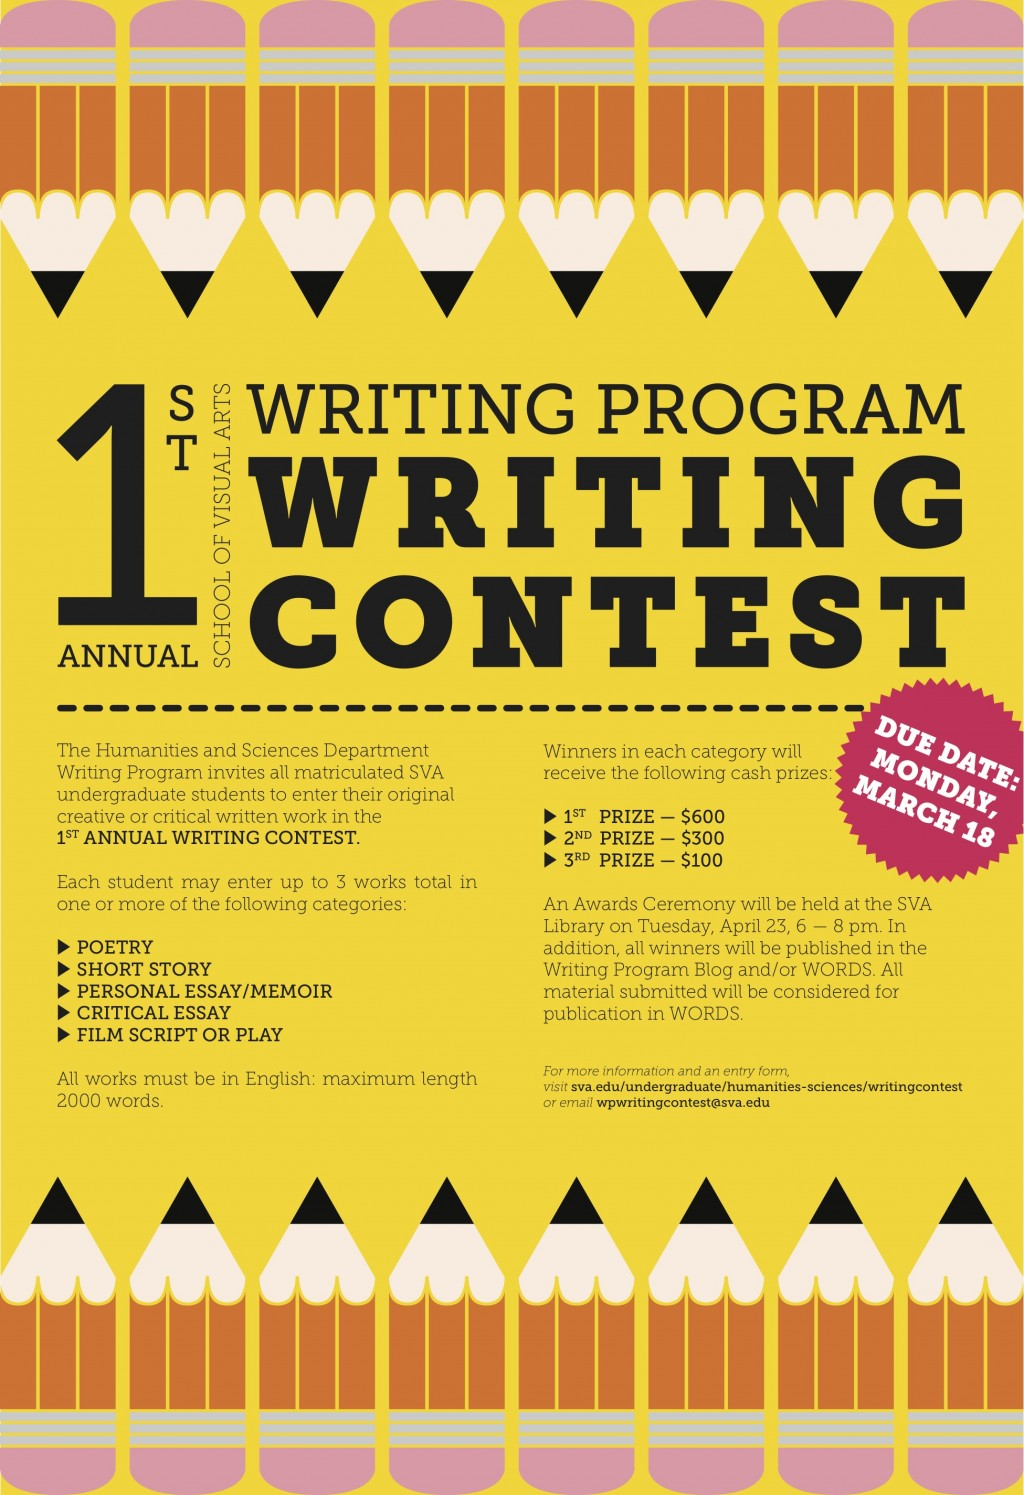 010 Essay Writing Blog 1st Annual Sva Program Contest Criteria Objectives Rubrics Tips Philippines For Nutrition Month Guidelines Mechanics Incredible International Competitions High School Students Rules By Essayhub Large